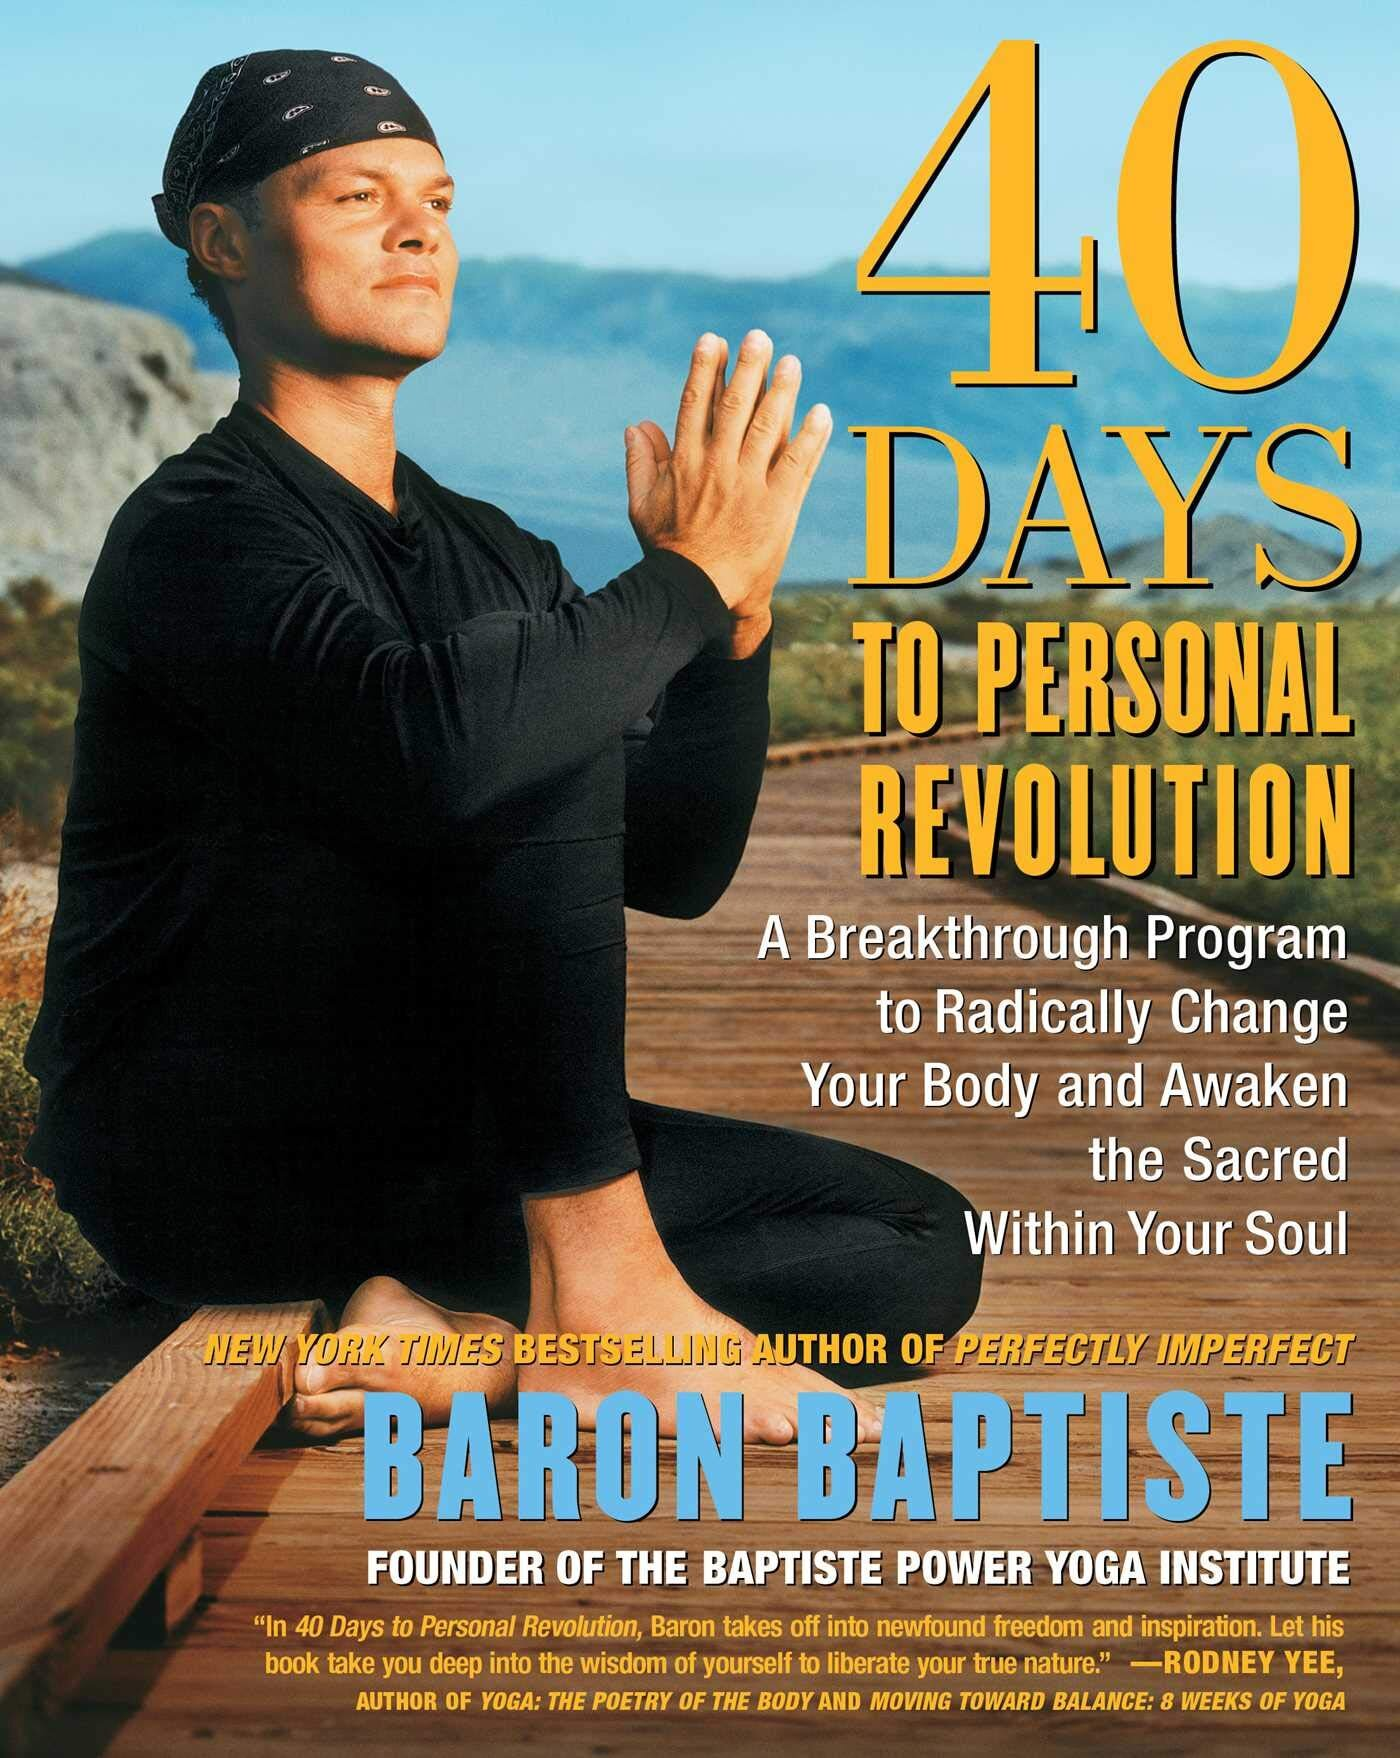 - 40 Days to Personal Revolution: A Breakthrough Program to Radically Change your Body and Awaken the Sacred Within Your Soul (2004)